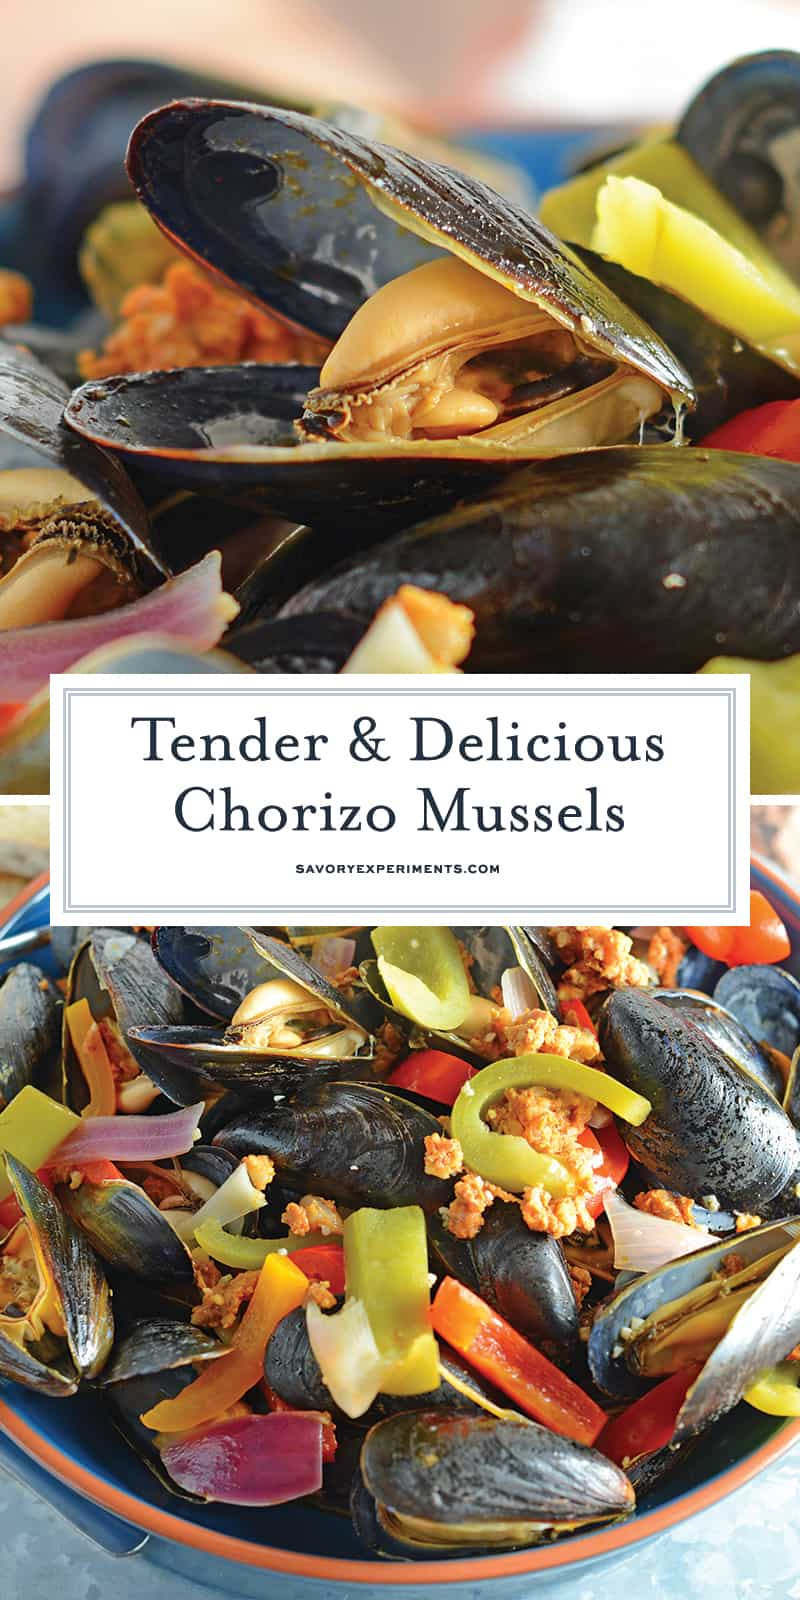 Chorizo Mussels are succulent, luscious tender mussels in a savory butter, chorizo wine sauce. Crusty bread is a must! #steamedmussels #easymusselrecipes #steampot www.savoryexperiments.com